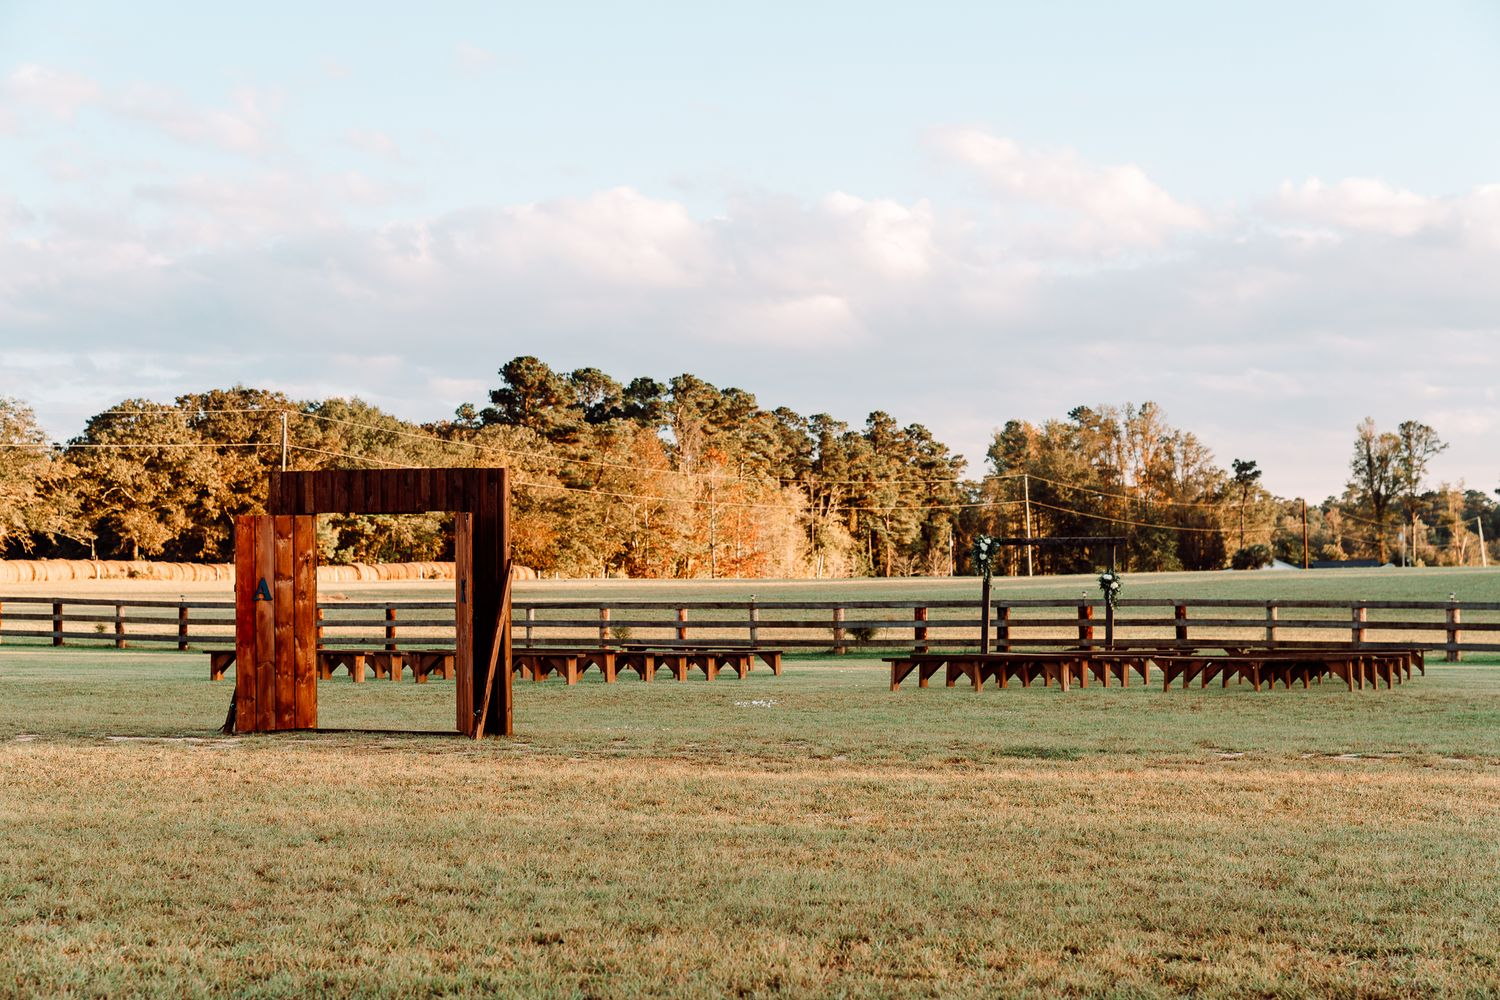 Wedding Ceremony setup at The Blessed Barn in Aynor, SC, by PHV Photo